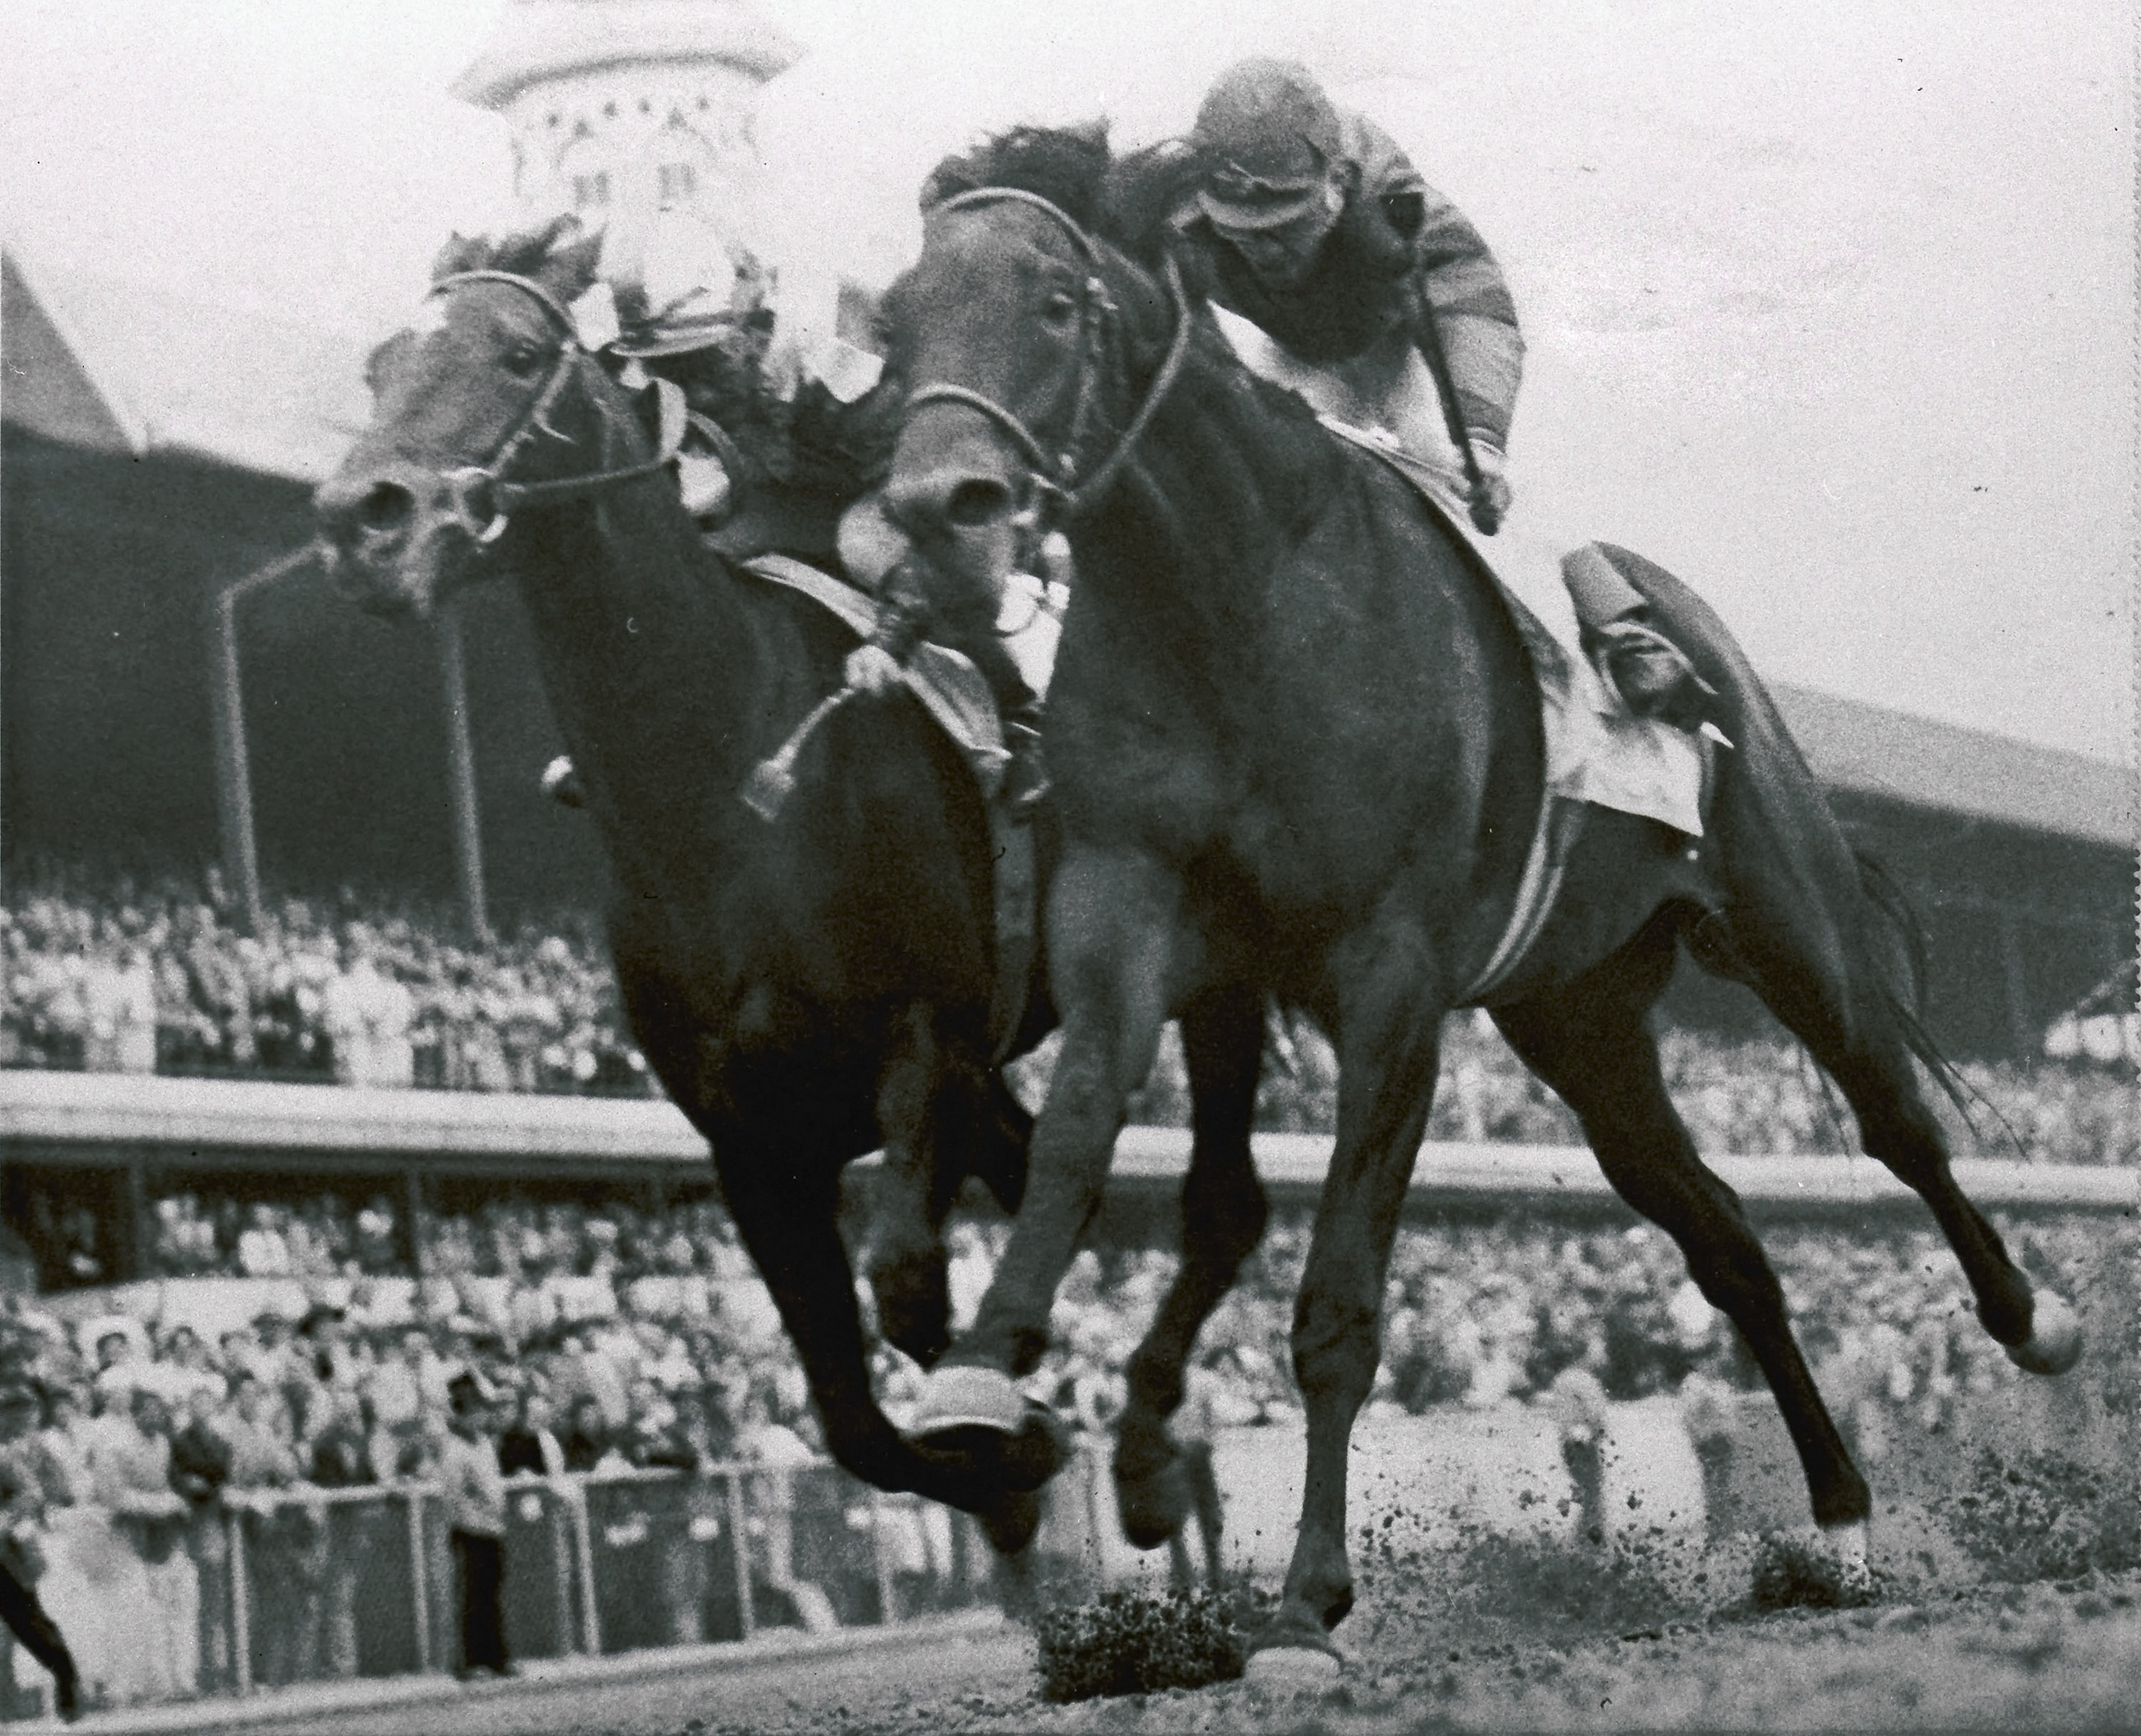 FILE - In this May 4, 1957 file photo,  Iron Liege, right, edges out Gallant Man at the finish line to win the Kentucky Derby horse race at Churchill Downs in Louisville, Ky. (AP Photo/File)